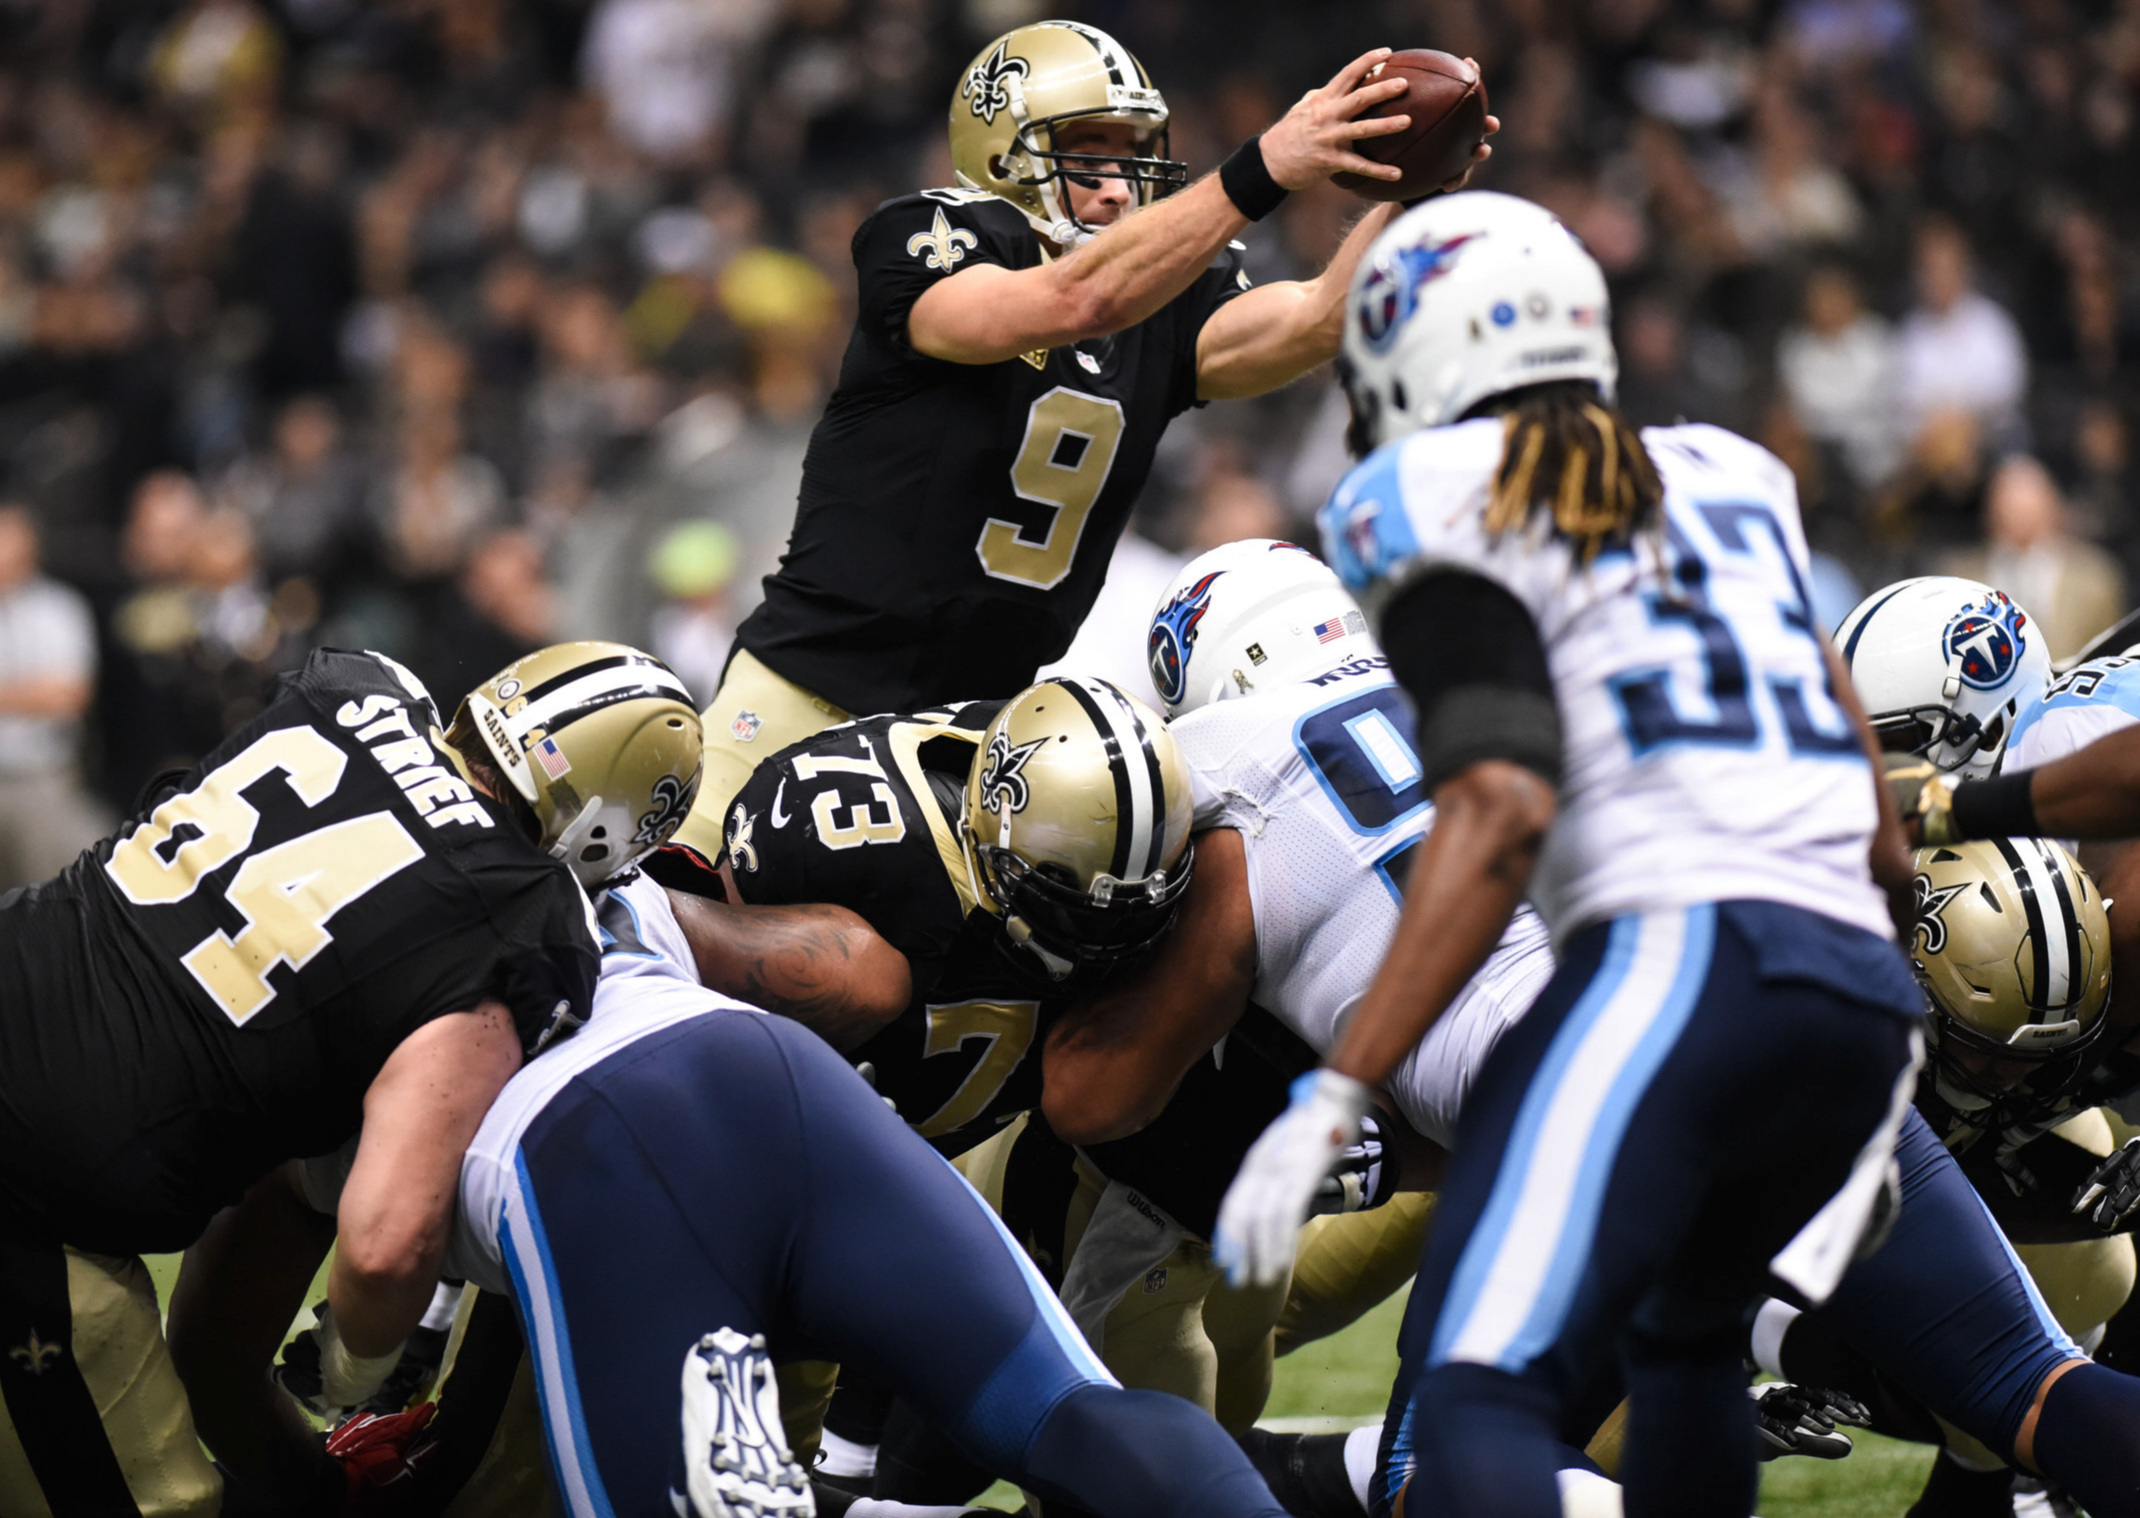 Drew Brees (9) scores a one yard touchdown dive against the Titans defense at the Mercedes-Benz Superdome in New Orleans. Sunday Nov. 8, 2015. The Saints fell to the Titans 34-28 in overtime.